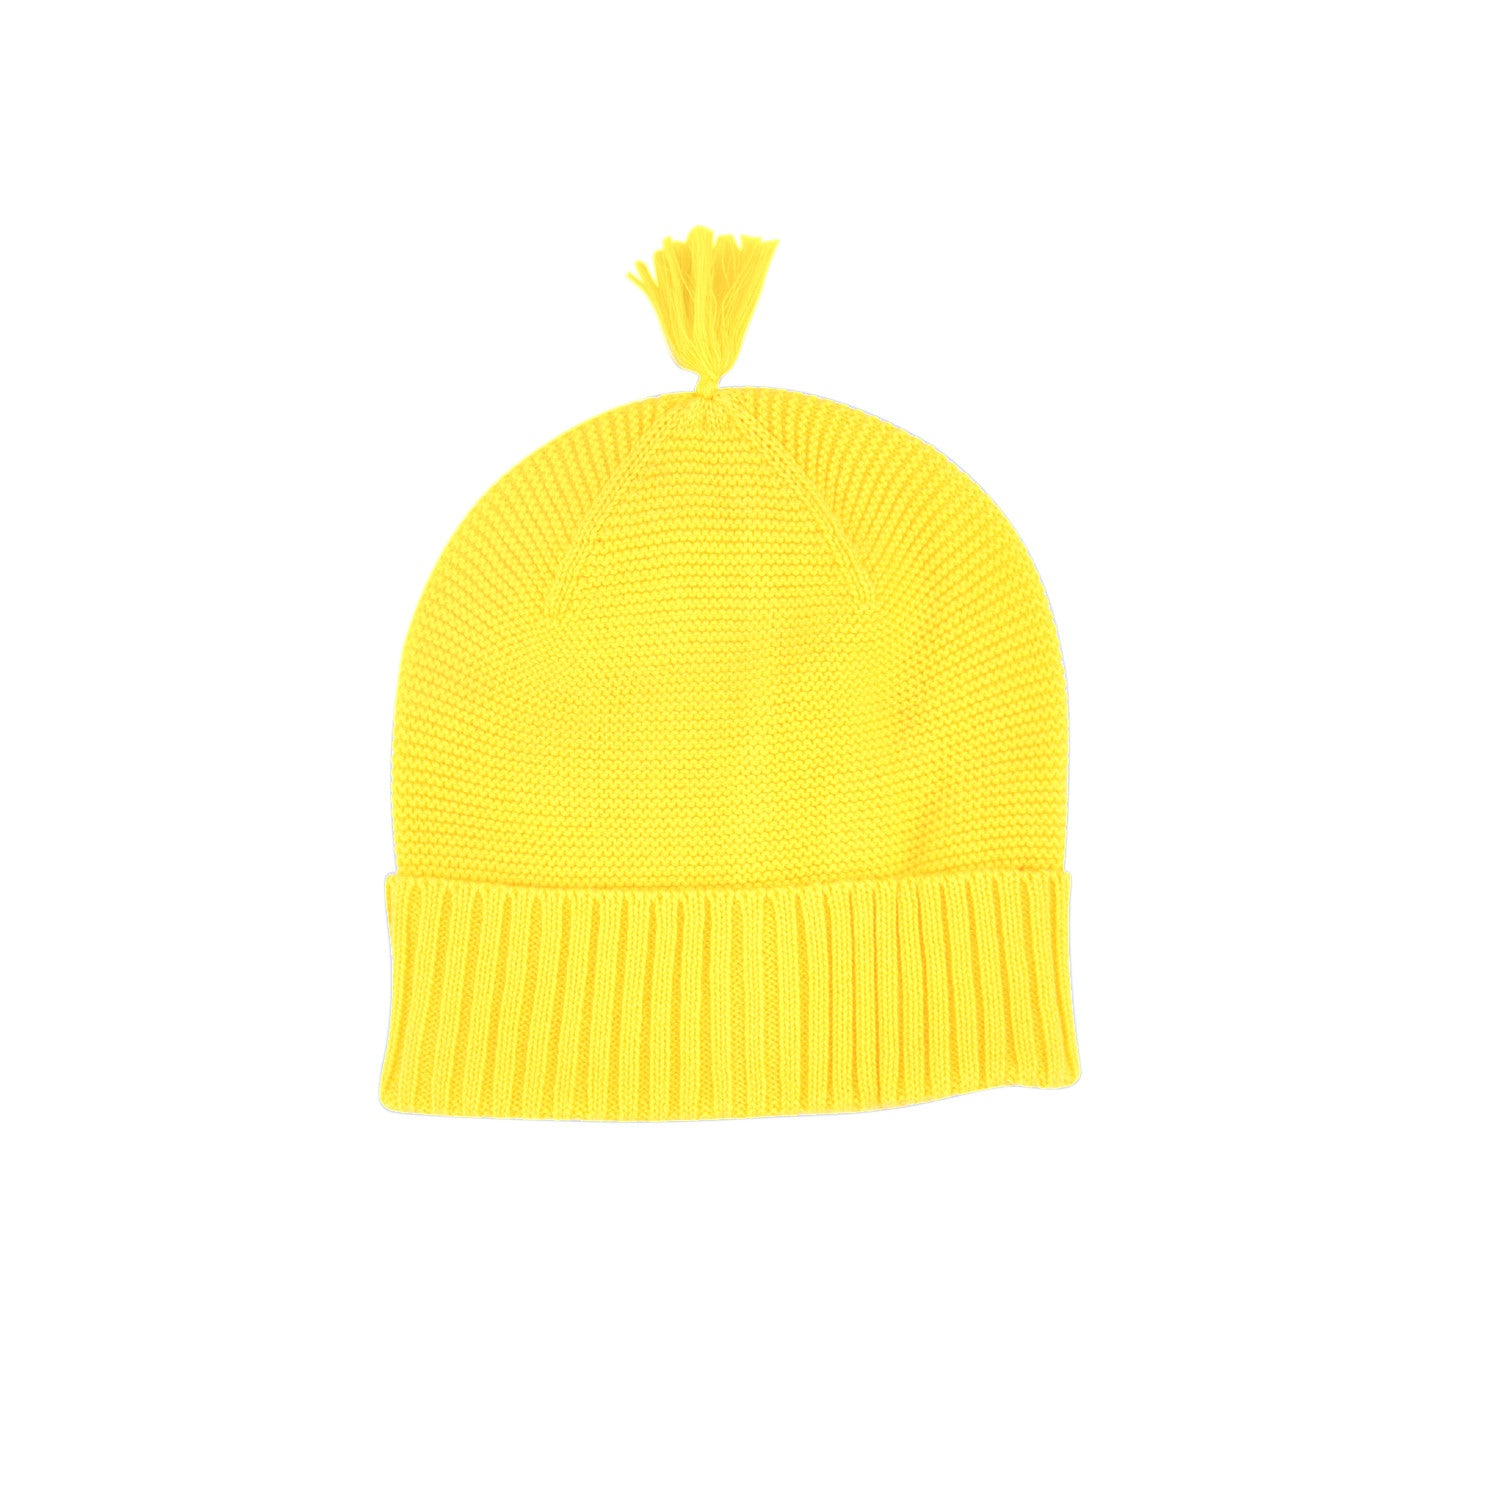 sunshine yellow beanie